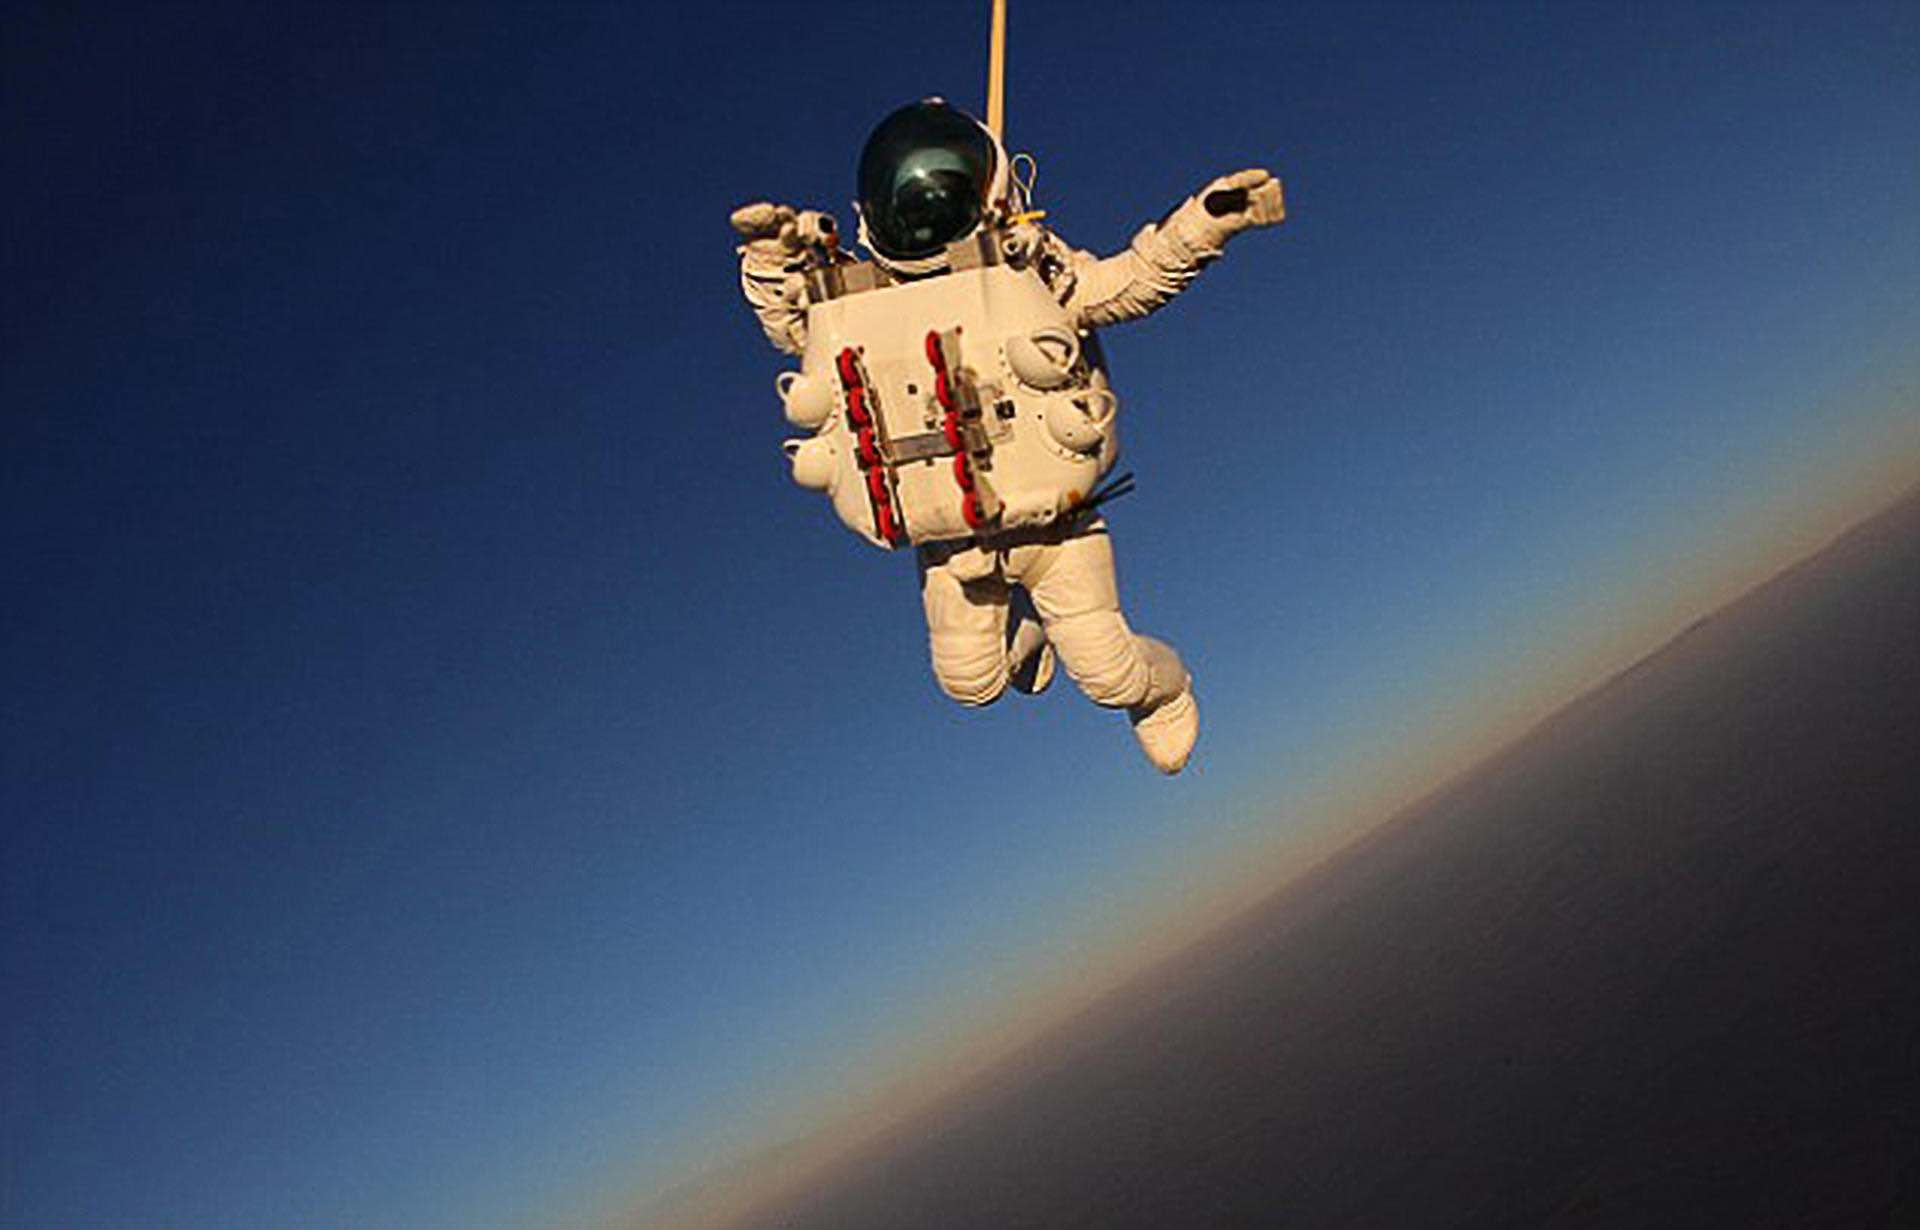 space skydiving